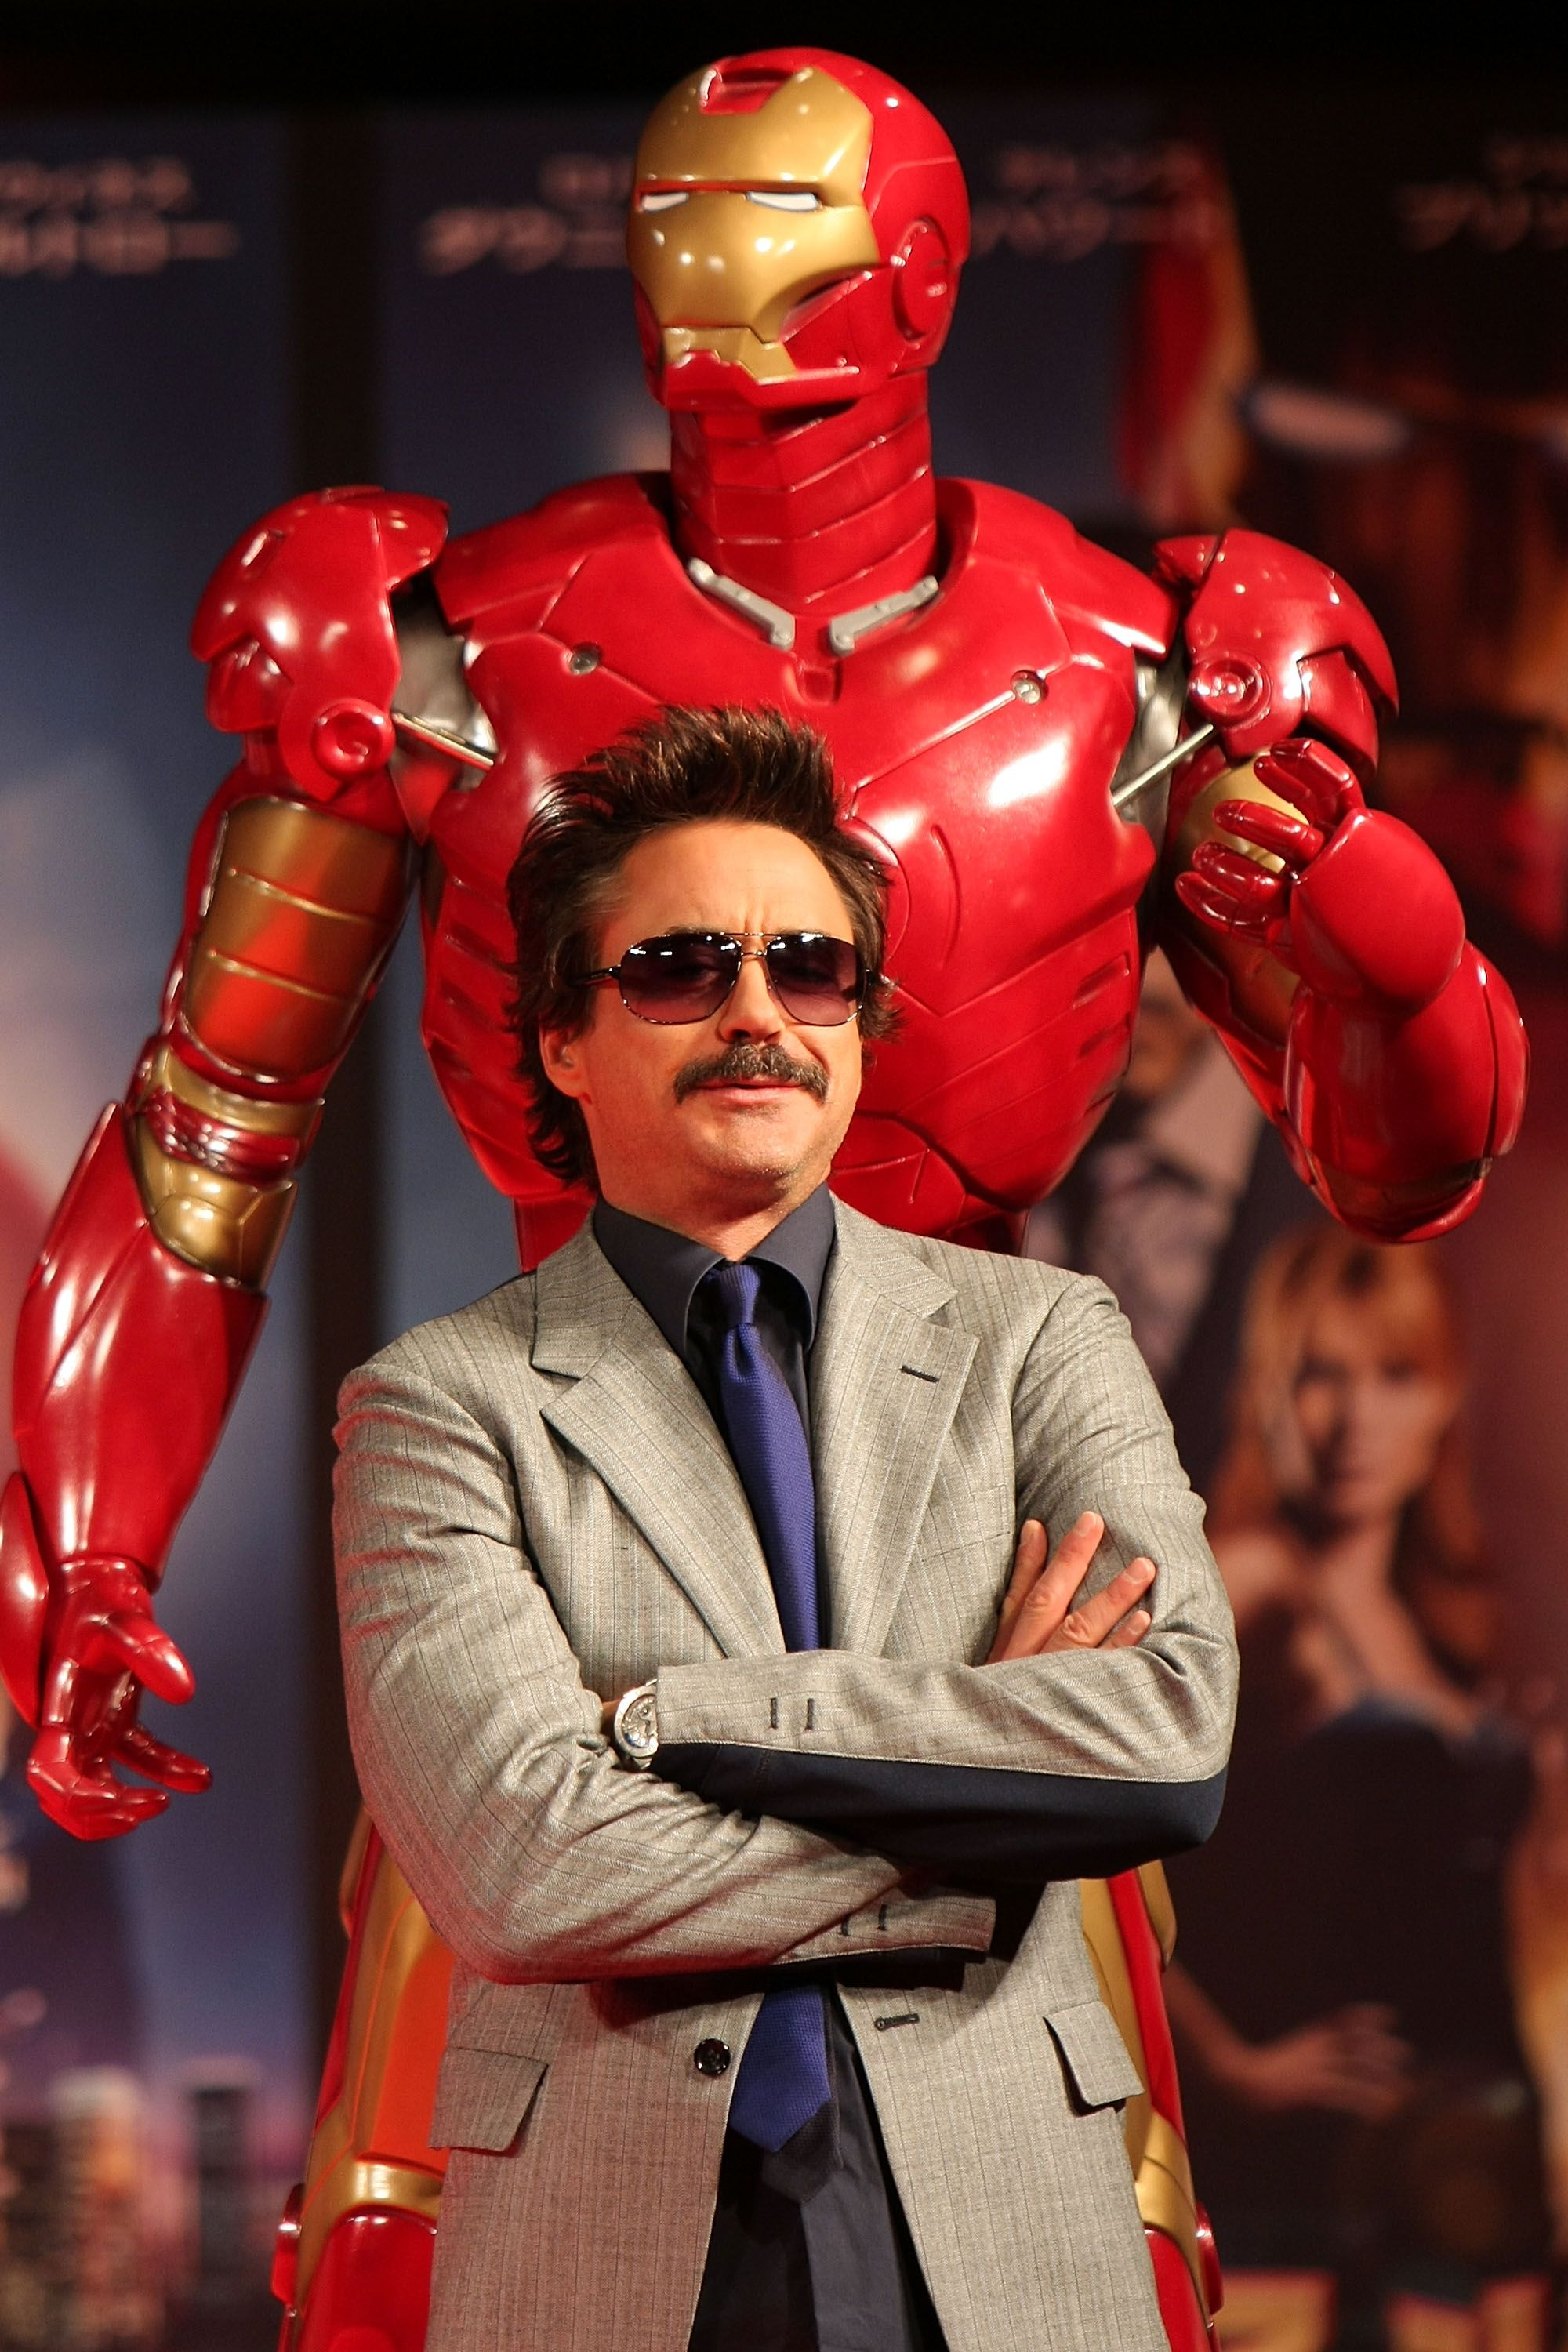 He was part of the inspiration for Tony Stark a.k.a. Iron Man.